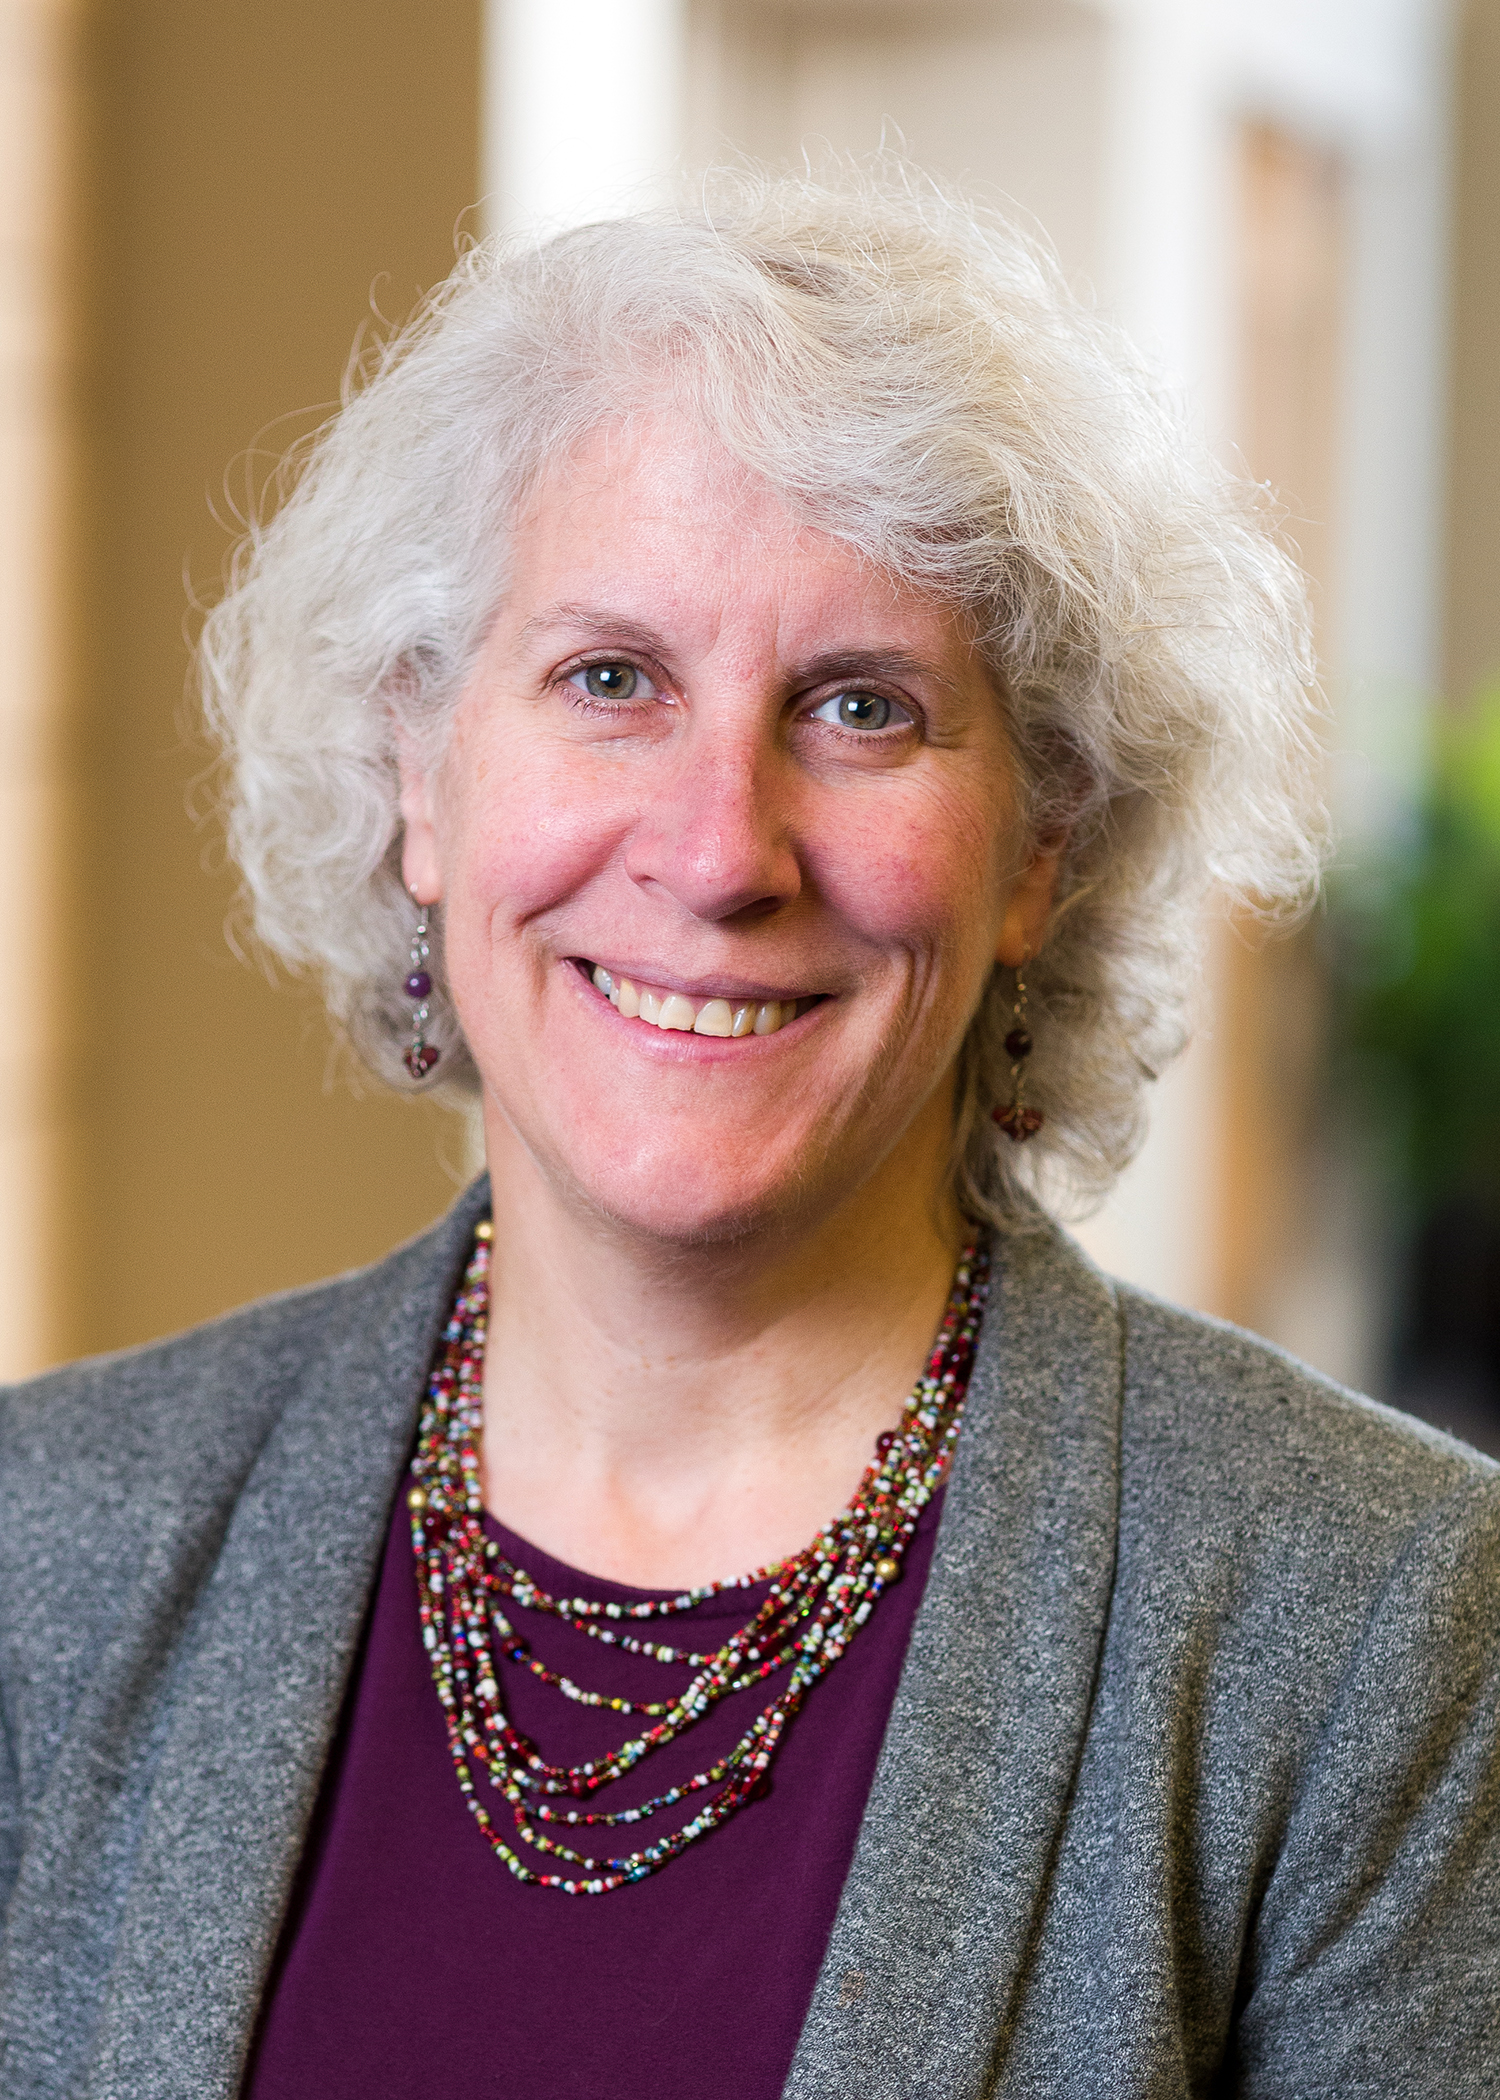 Katherine Kruse, Associate Dean for Academic Affairs and Professor of Law at the Mitchell Hamline School of Law.